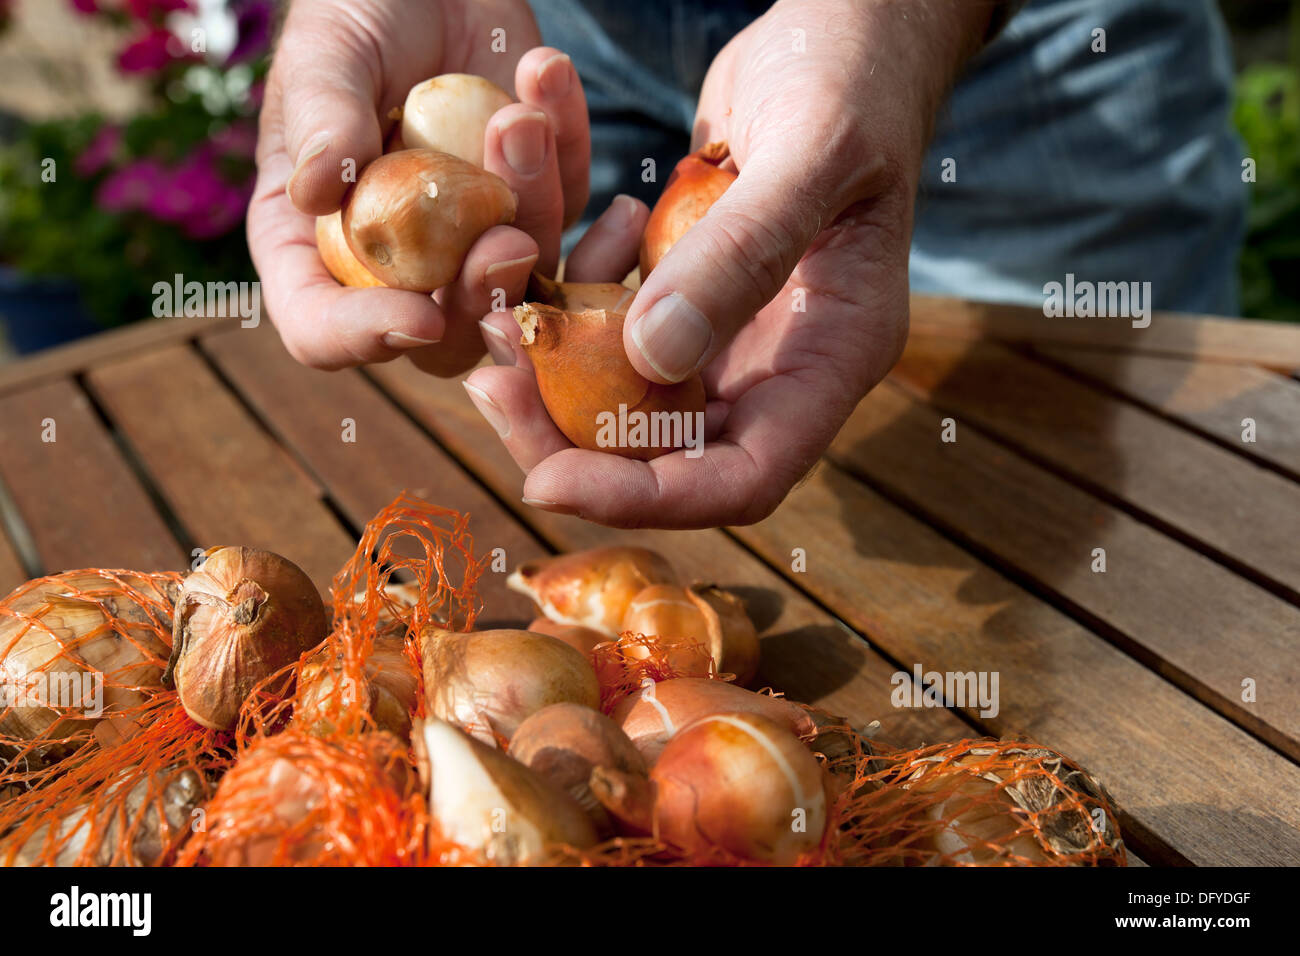 Man holding tulip bulbs England UK United Kingdom GB Great Britain - Stock Image